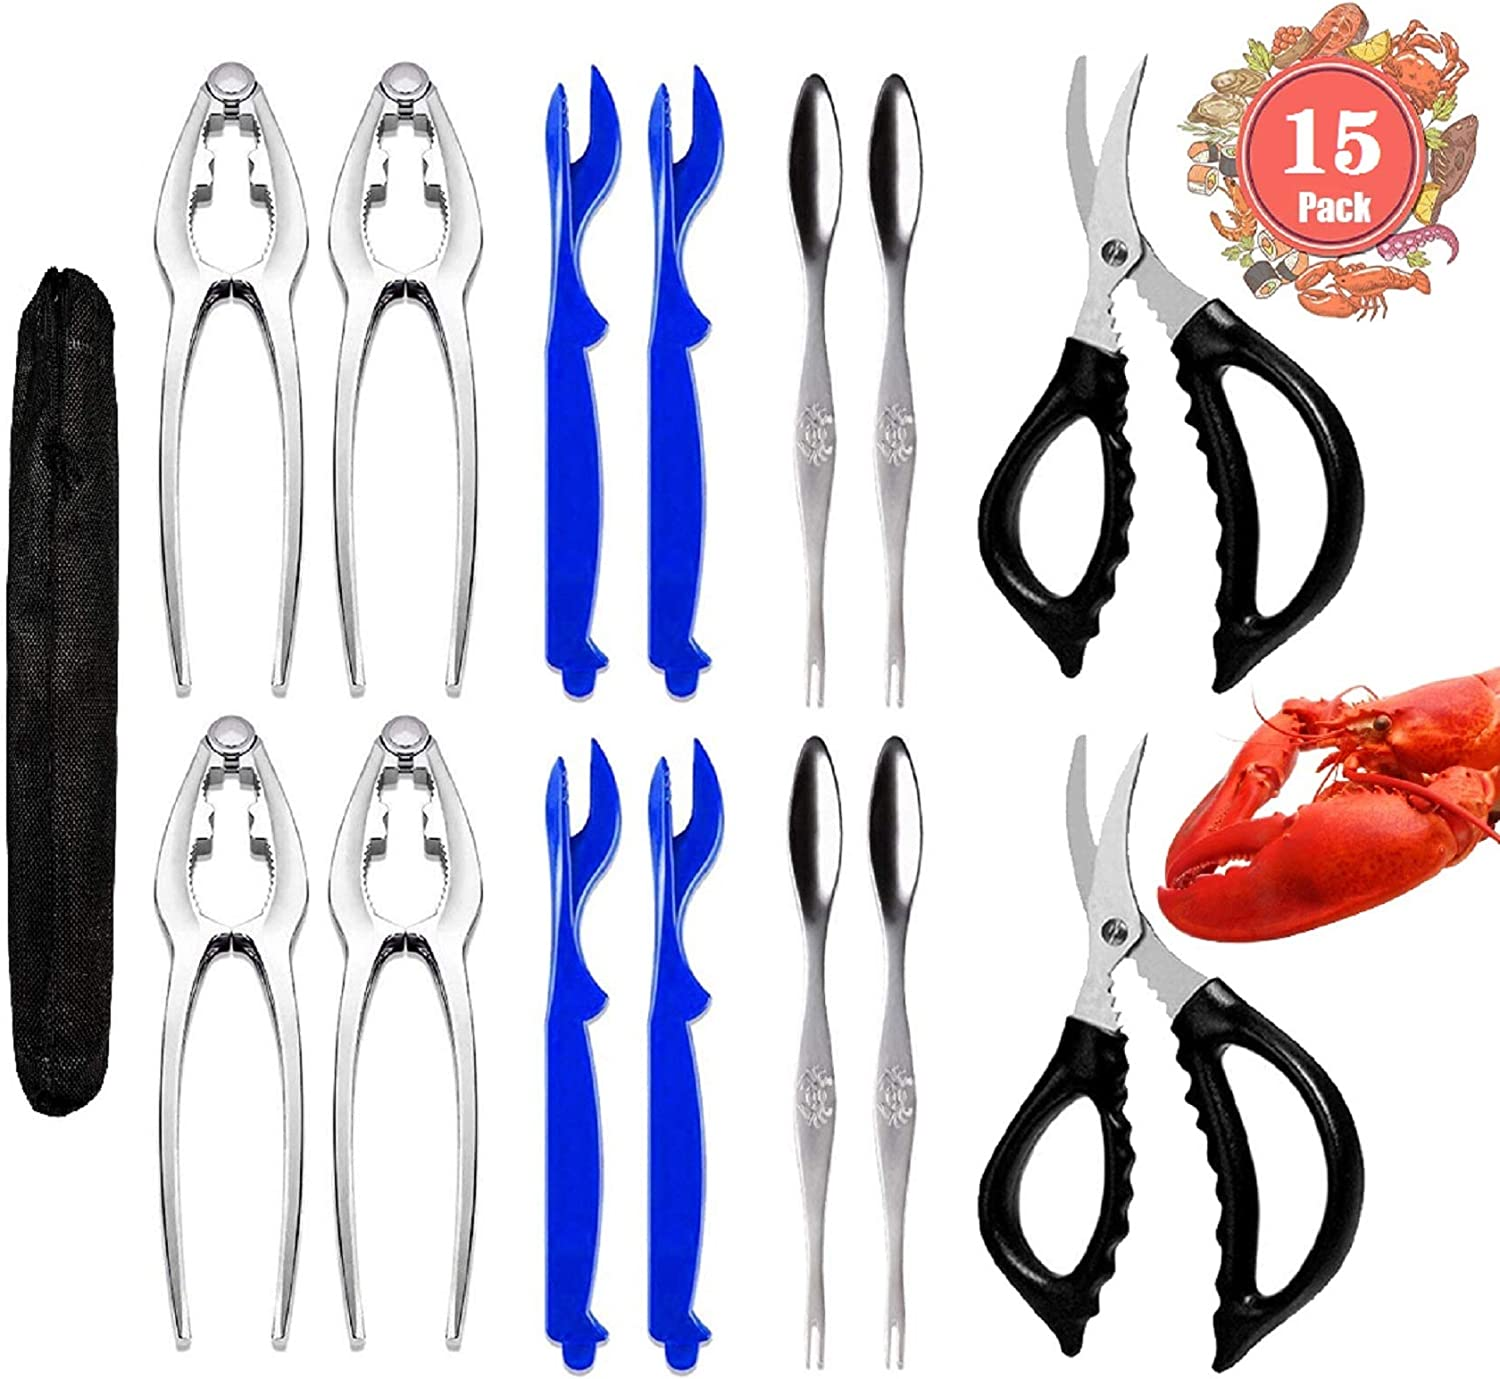 15 Pcs Seafood San Diego Mall Tools Set New product type - 4 Crackers Crab Lobster Shellers